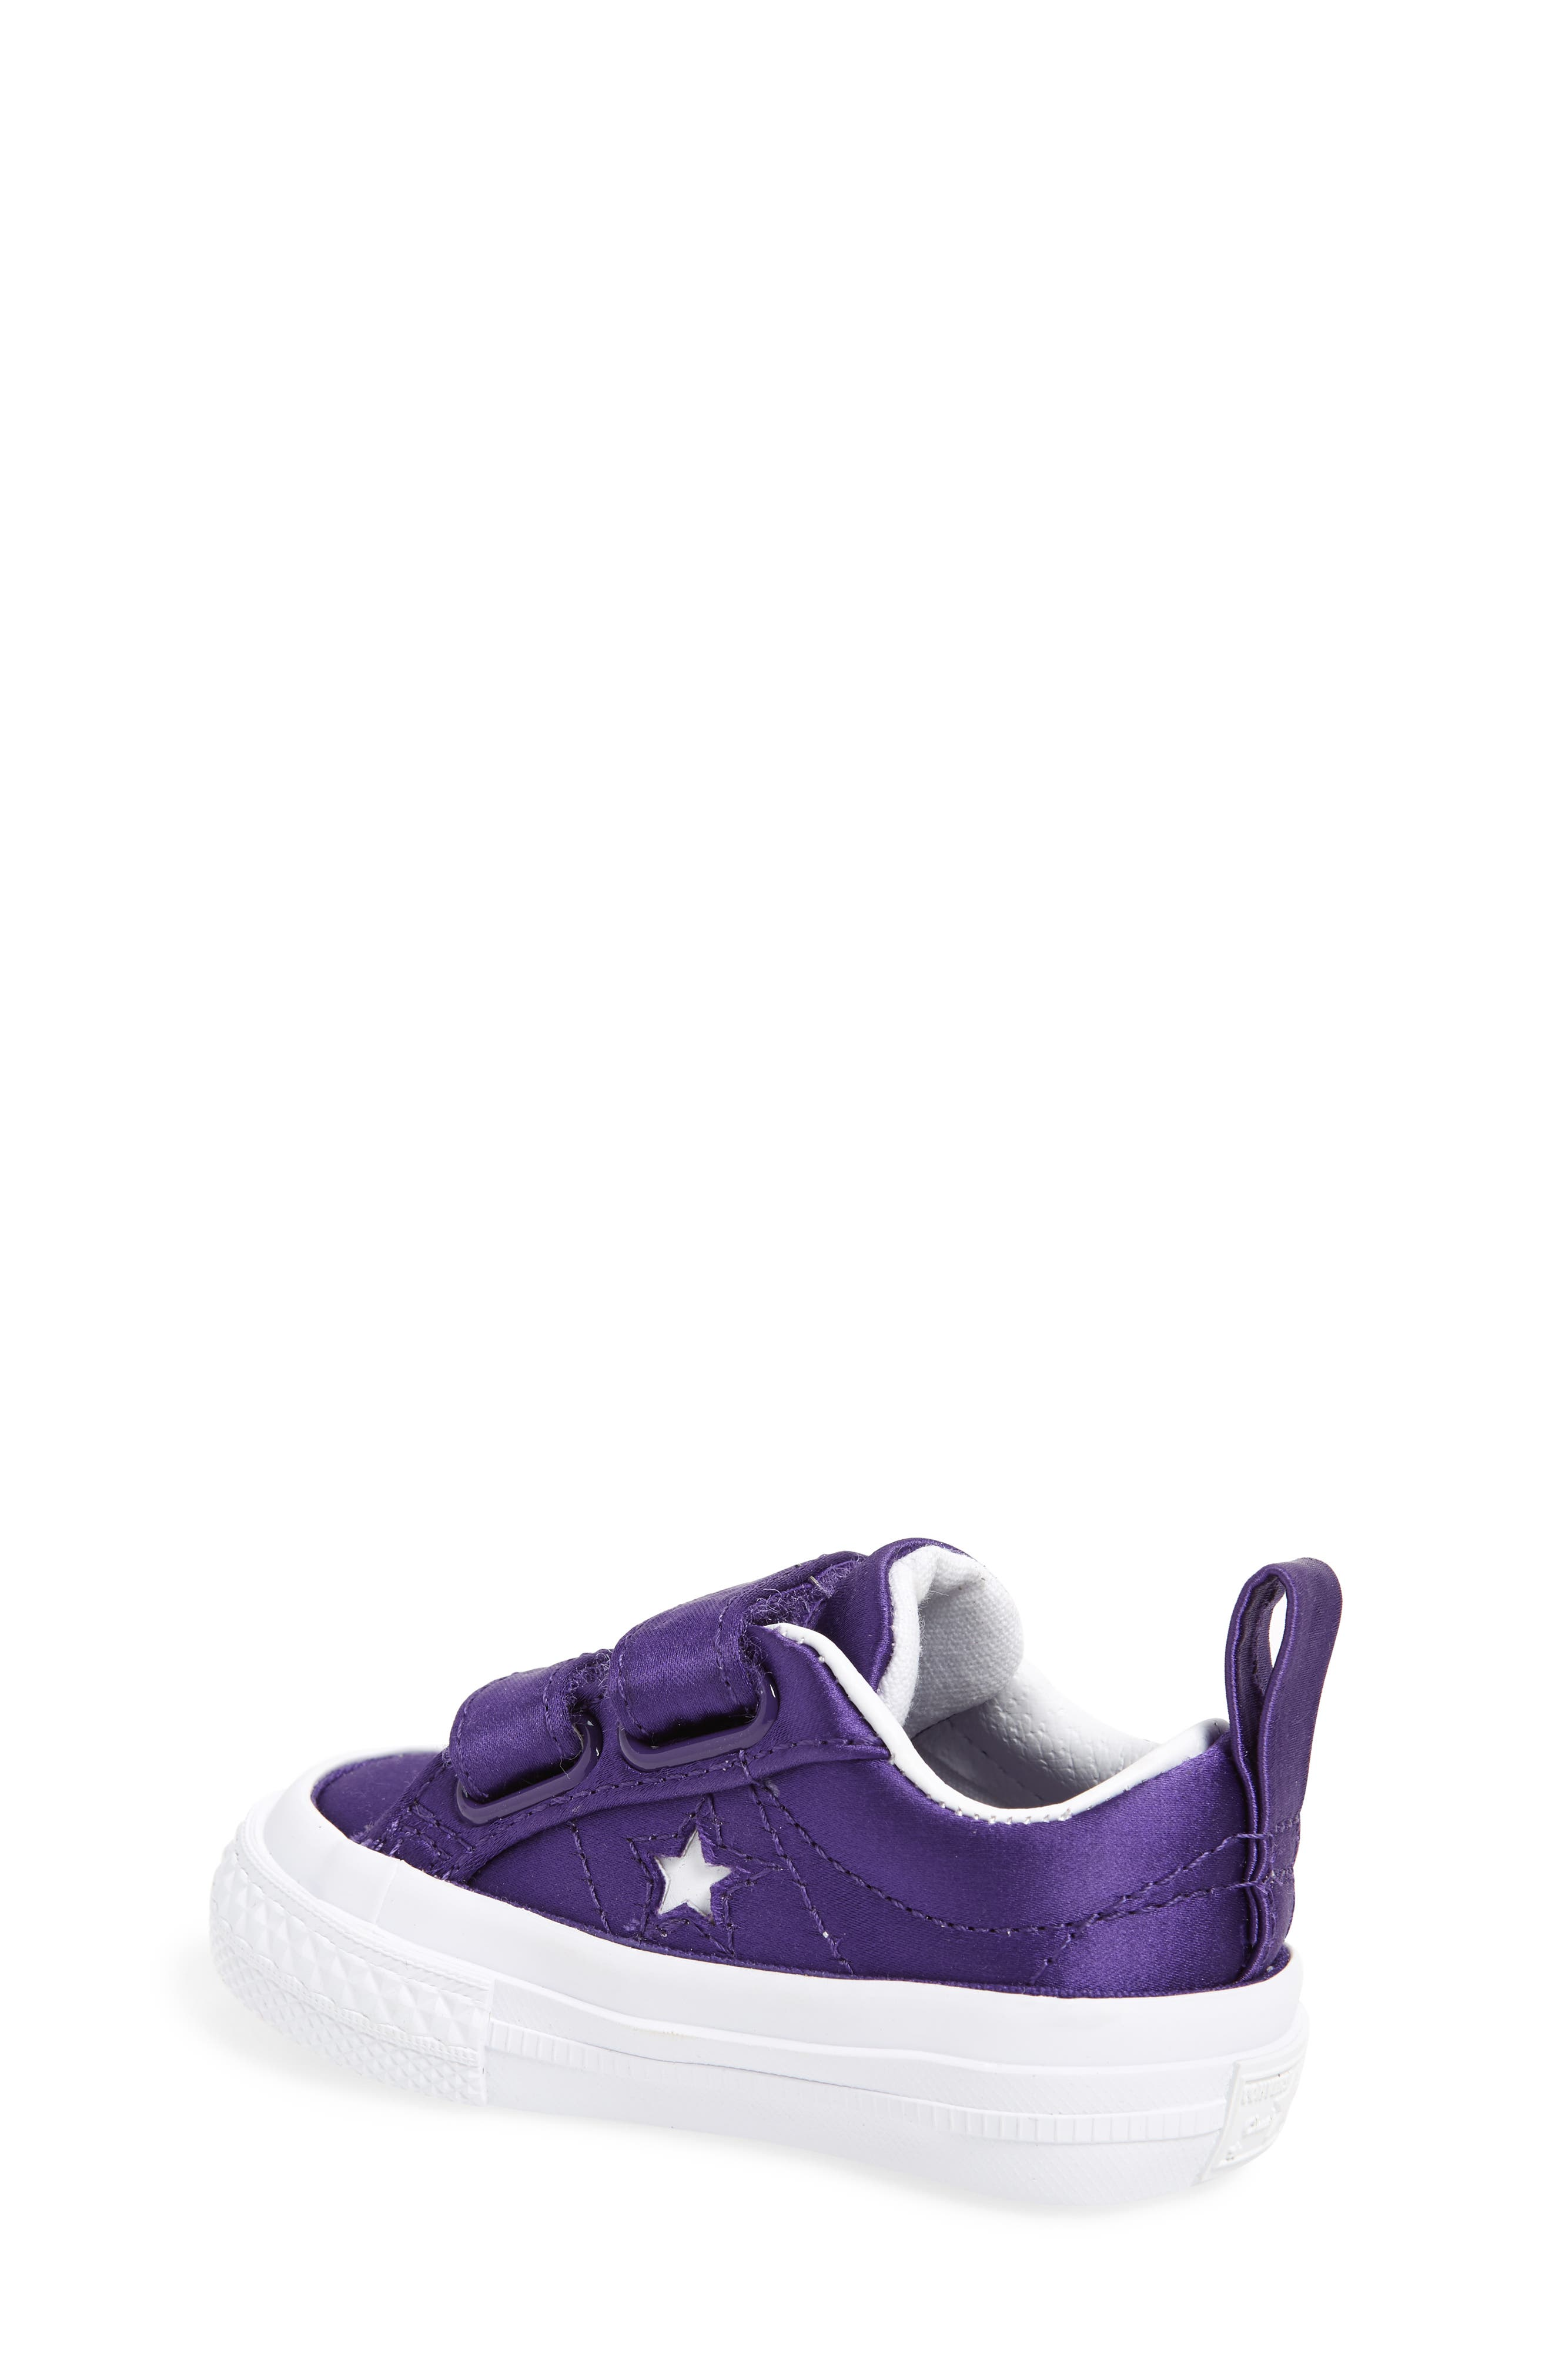 One Star Satin 2V Low Top Sneaker,                             Alternate thumbnail 2, color,                             510